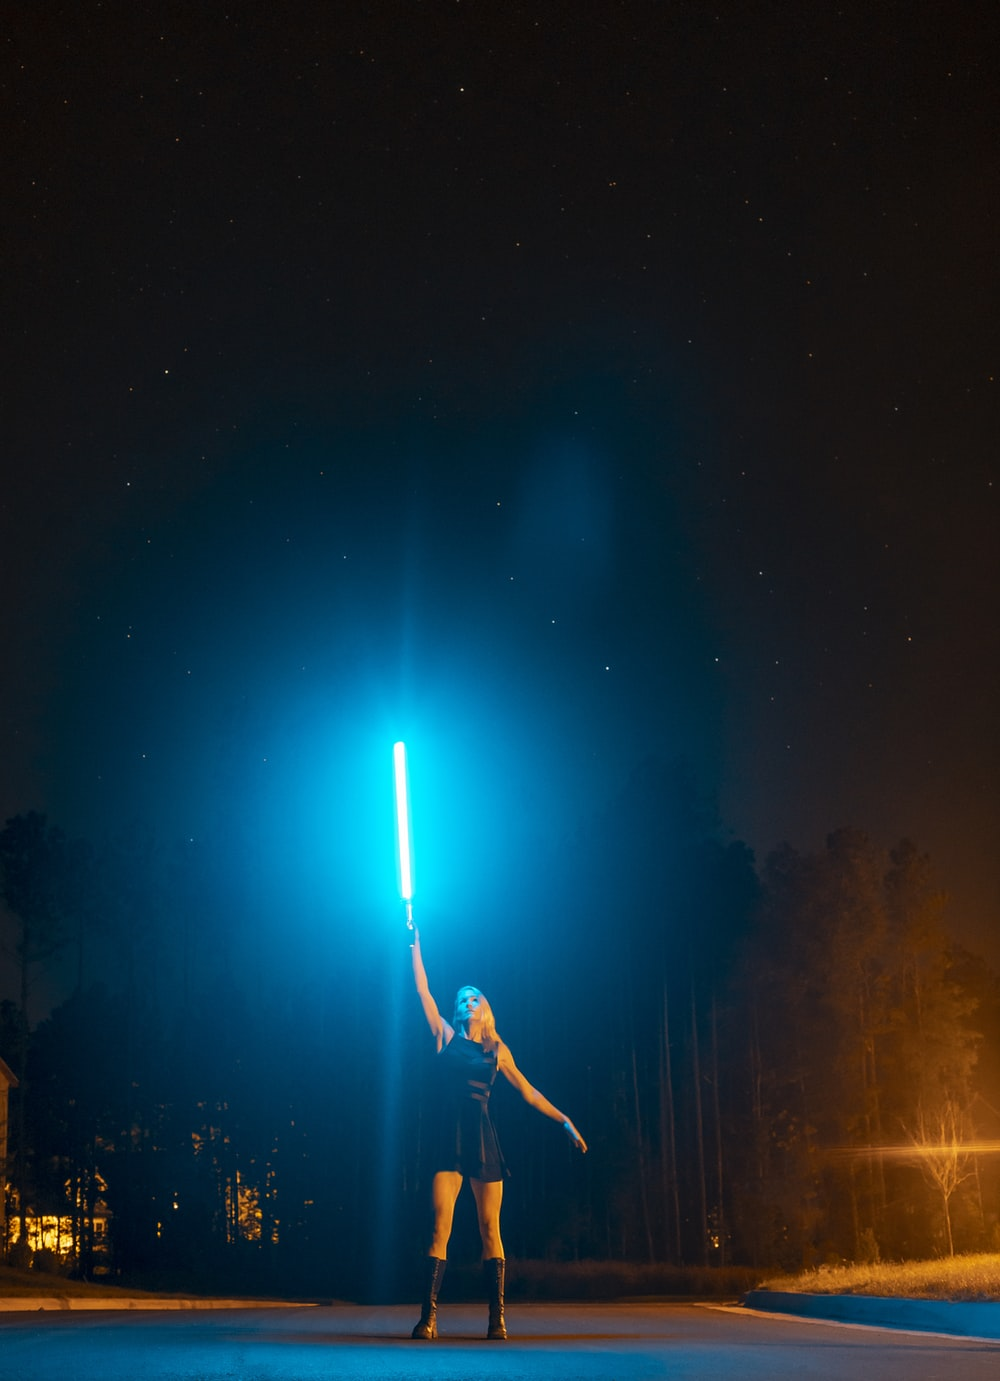 man in black shirt and pants standing on rock during night time